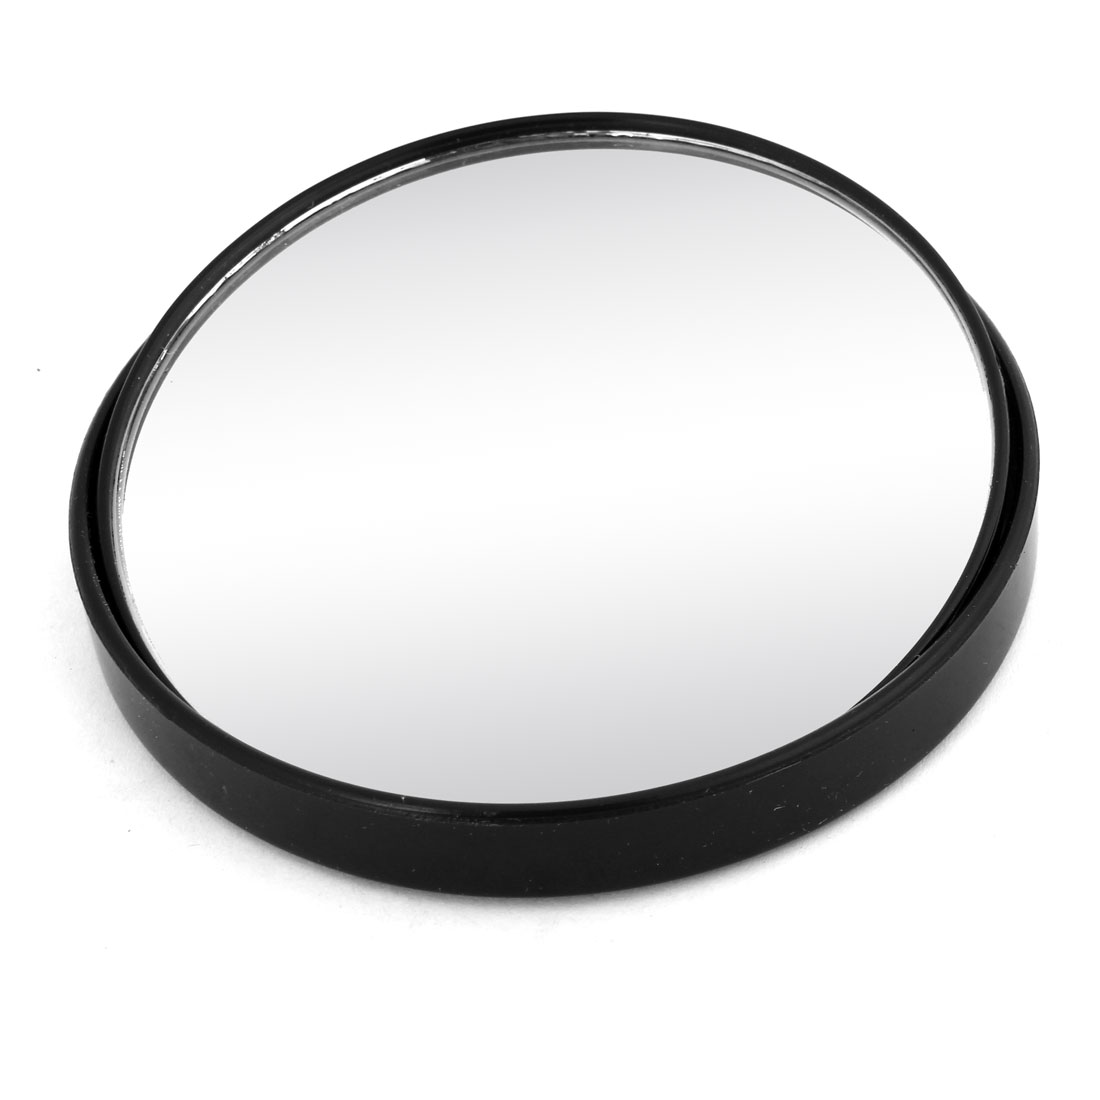 98mm Dia Black Shell Universal Wide Angle Round Rearview Blind Spot Mirror for Car